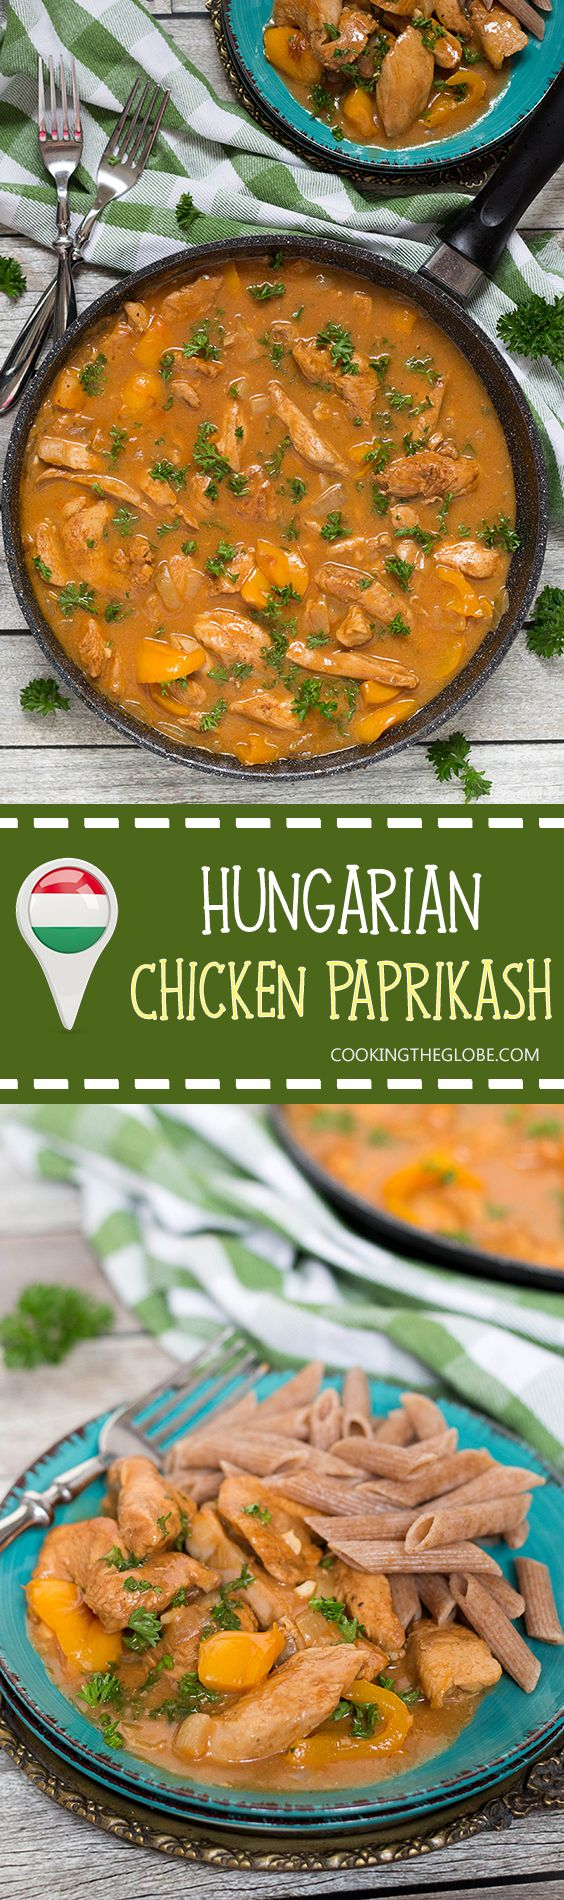 Hungarian Chicken Paprikash is basically a paprika flavored chicken. This dish…